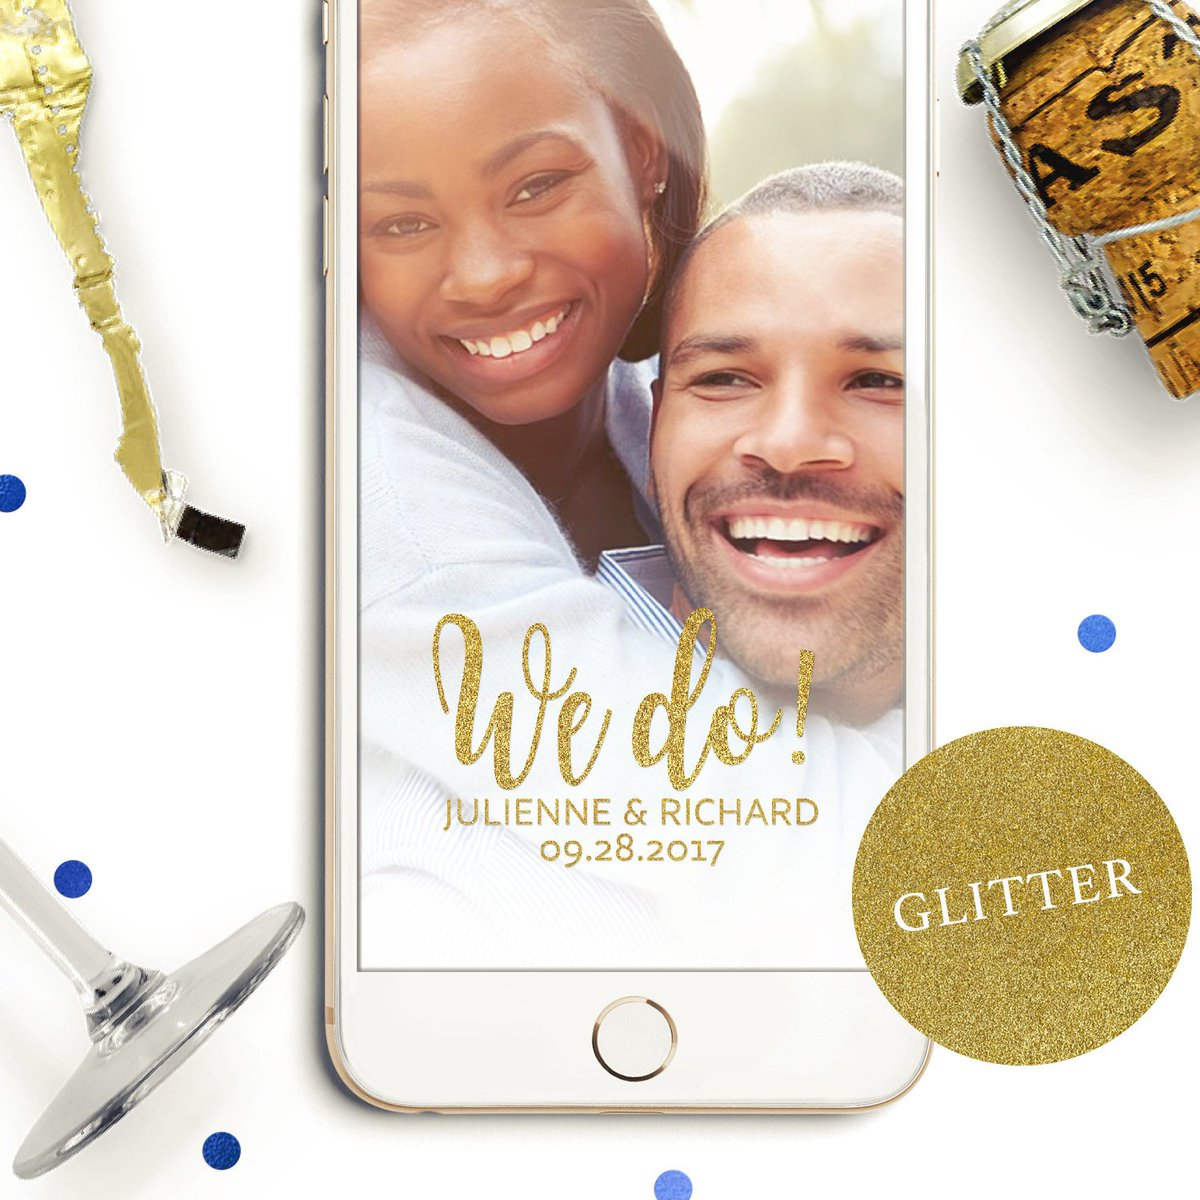 Golden Calligraphy &quot;We do&quot; Filter #EngagementParty #Geofilter #SnapchatFilter  http:// etsy.me/2qfgE3X  &nbsp;  <br>http://pic.twitter.com/lChA6C3SQp